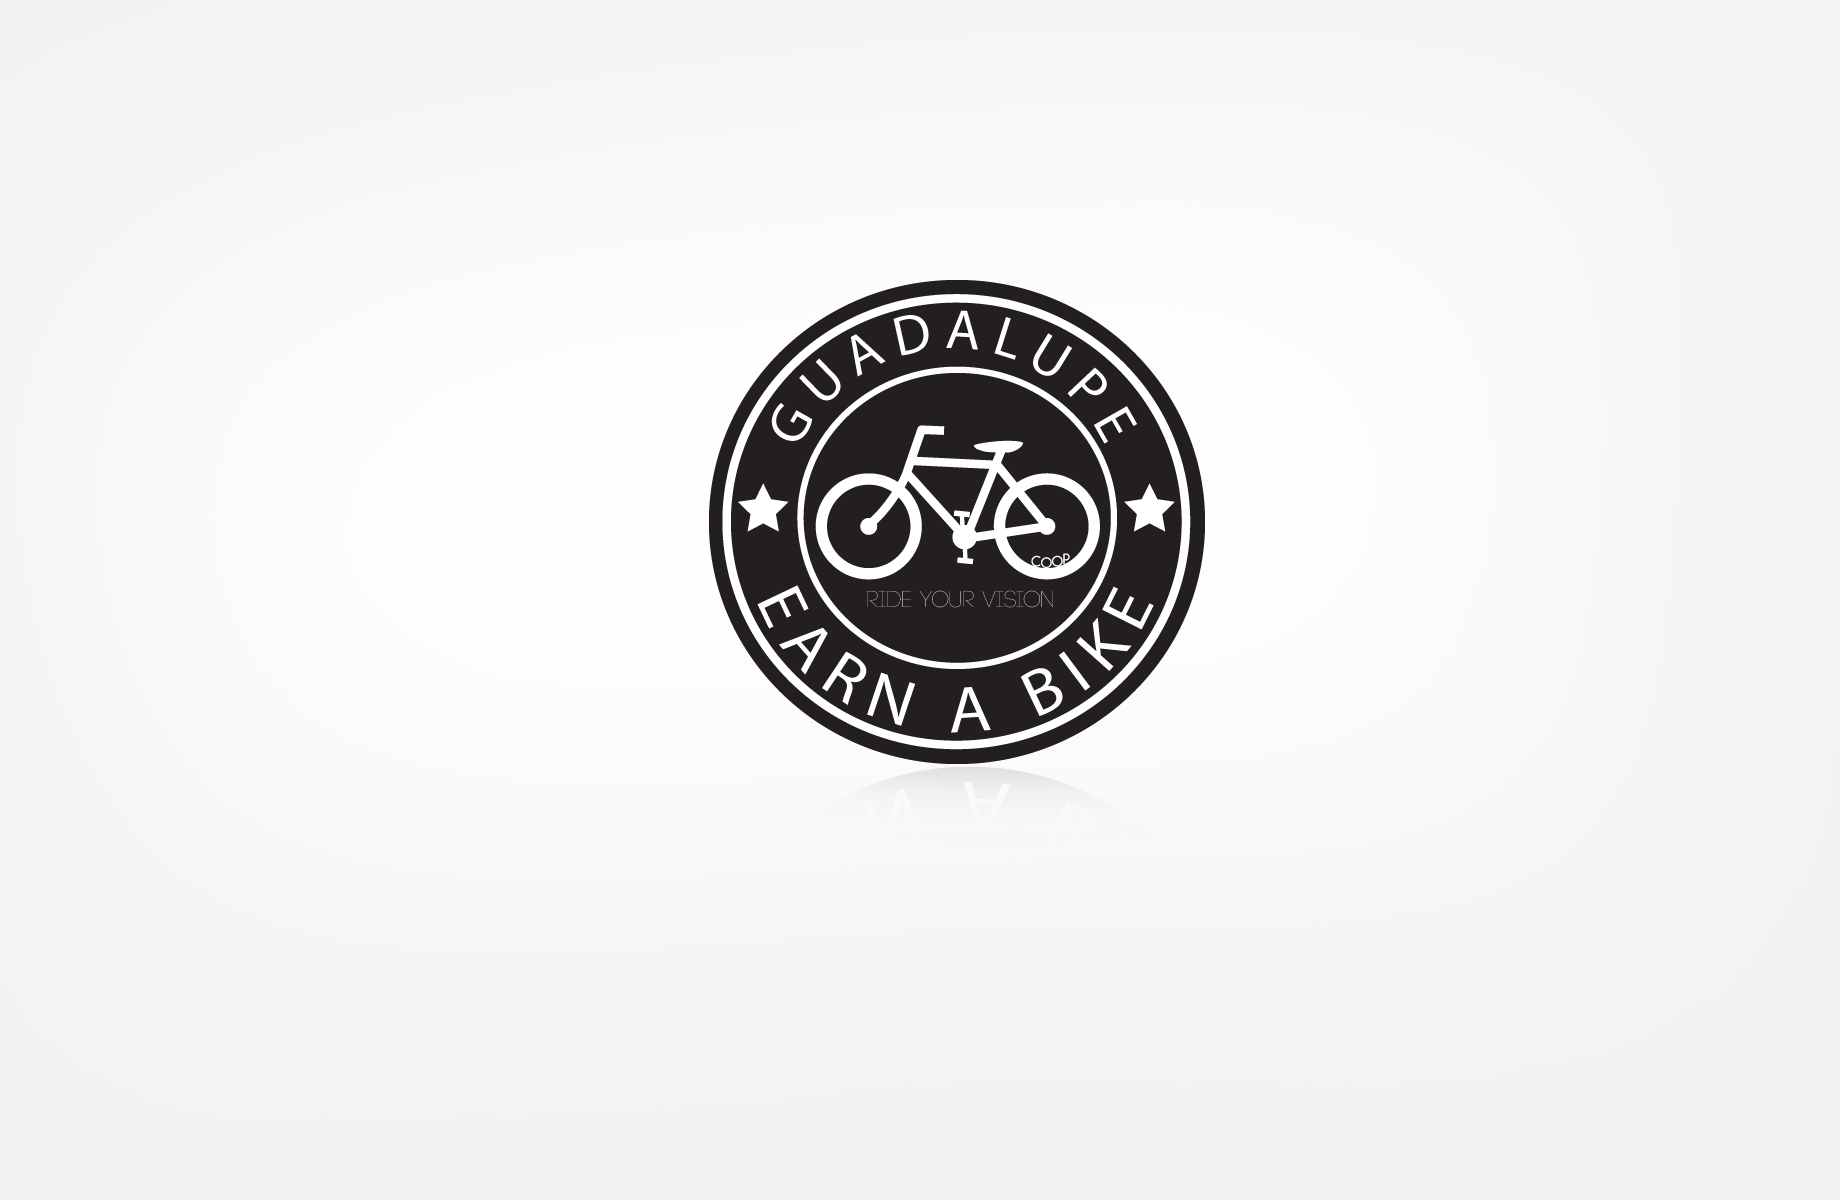 Logo Design by Jan Chua - Entry No. 54 in the Logo Design Contest Inspiring Logo Design for Guadalupe Earn a Bike Coop..